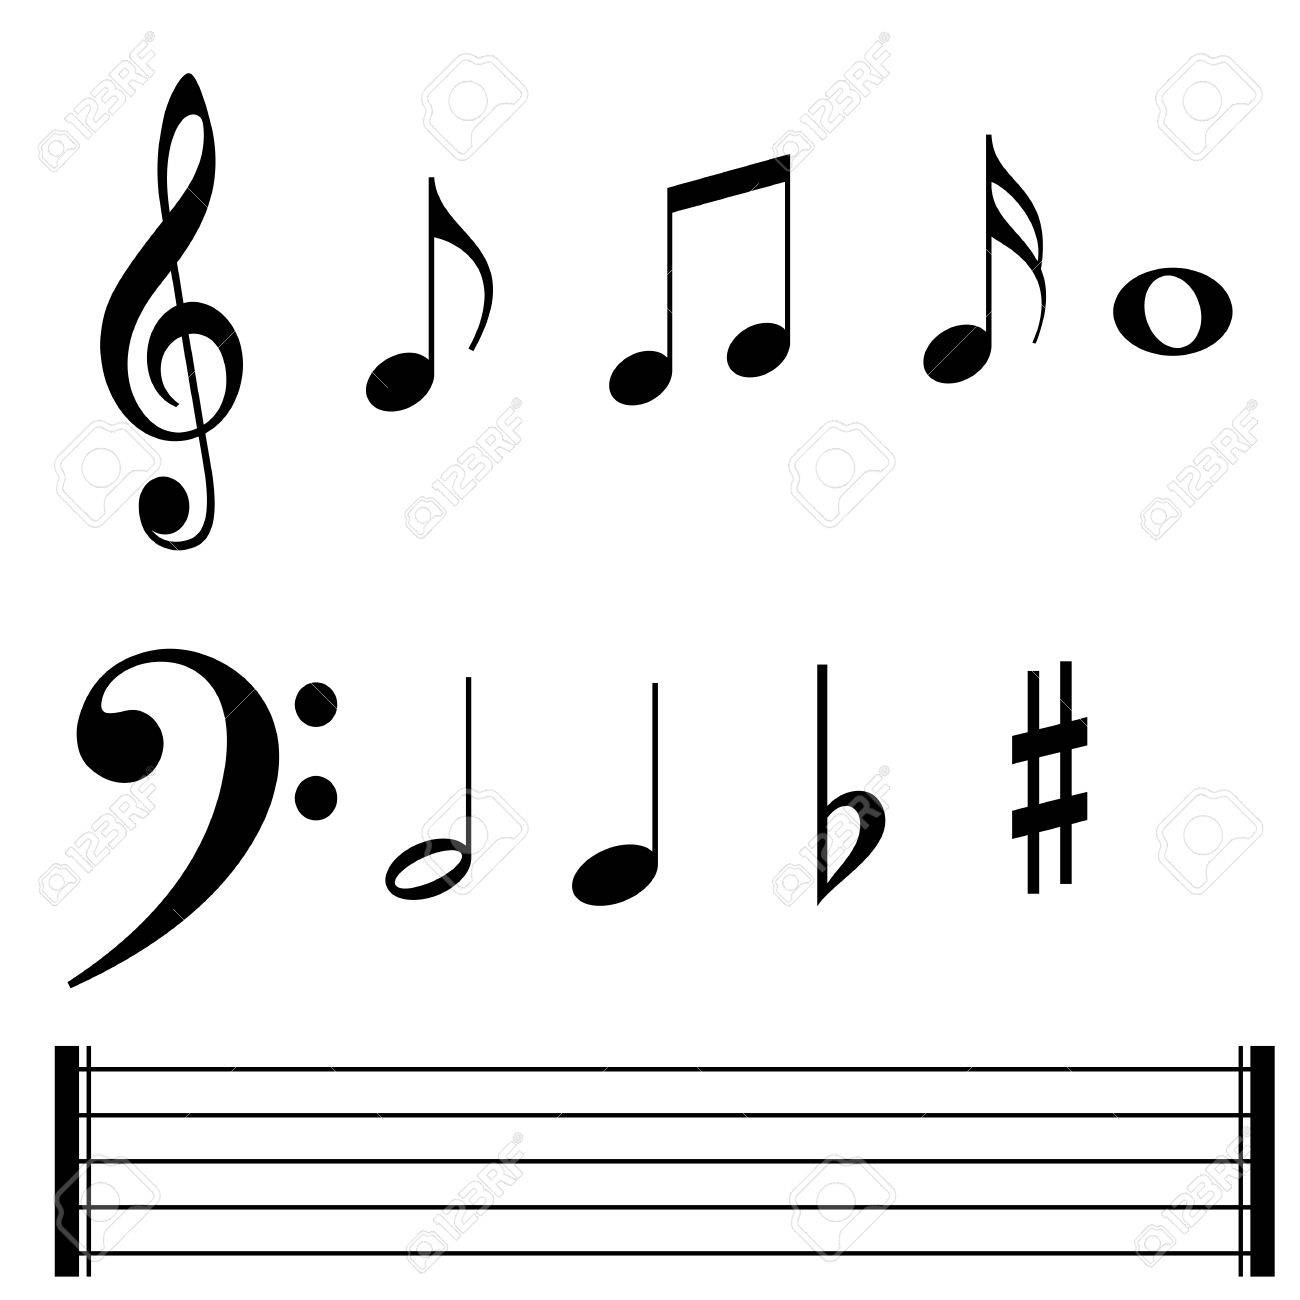 Music Note Symbols And Lines Stock Photo Picture And Royalty Free Image Image 42863428